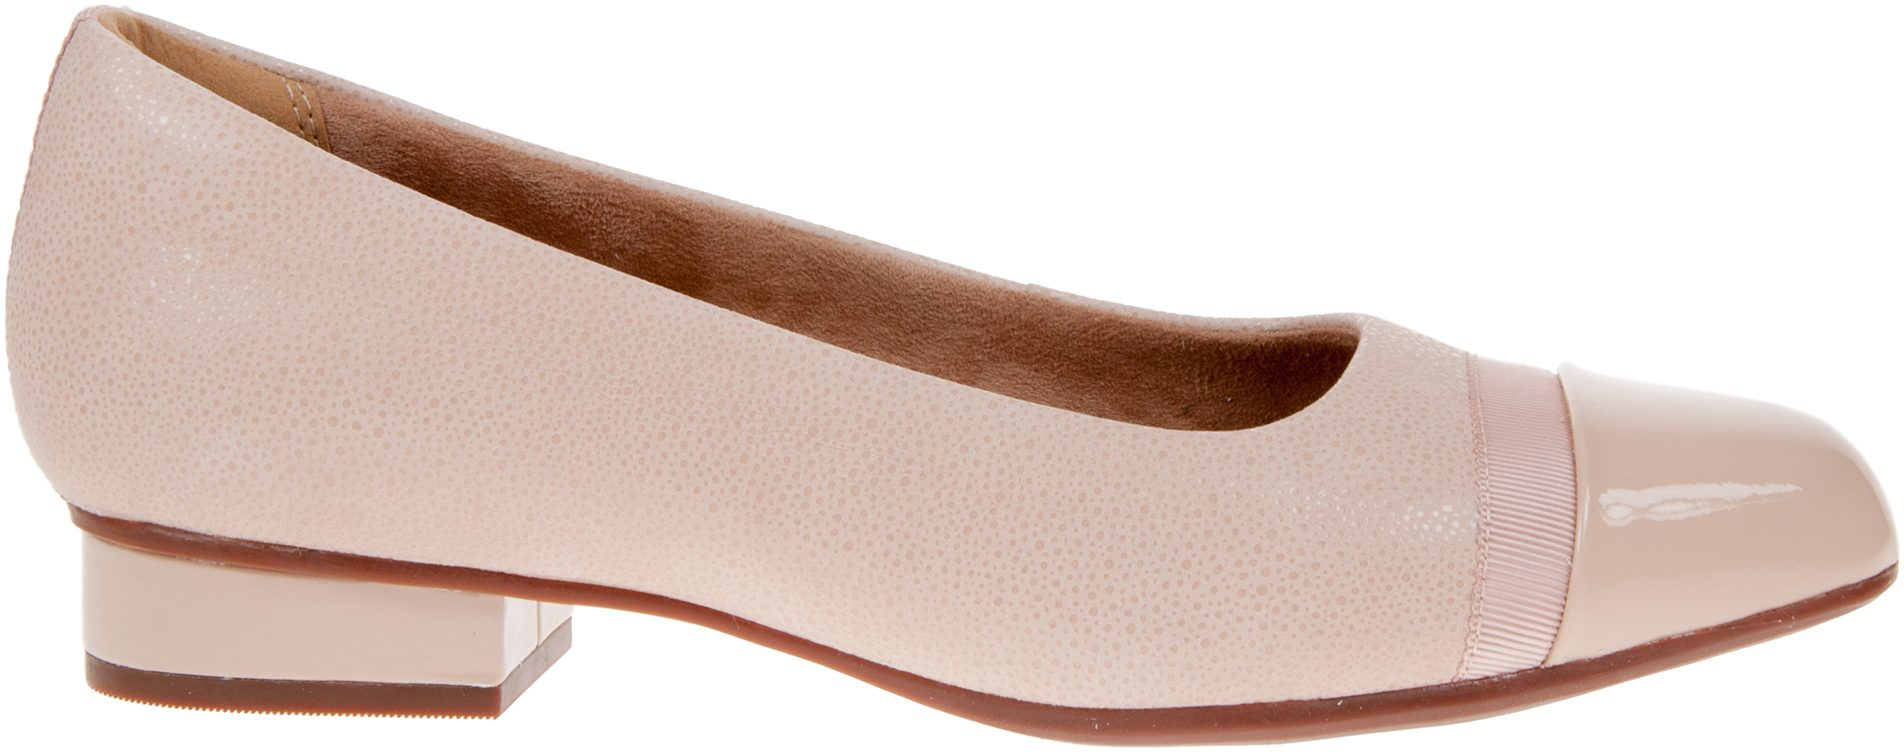 clarks unstructured Size 6 W Keesha Rosa Nude Shoes NIB